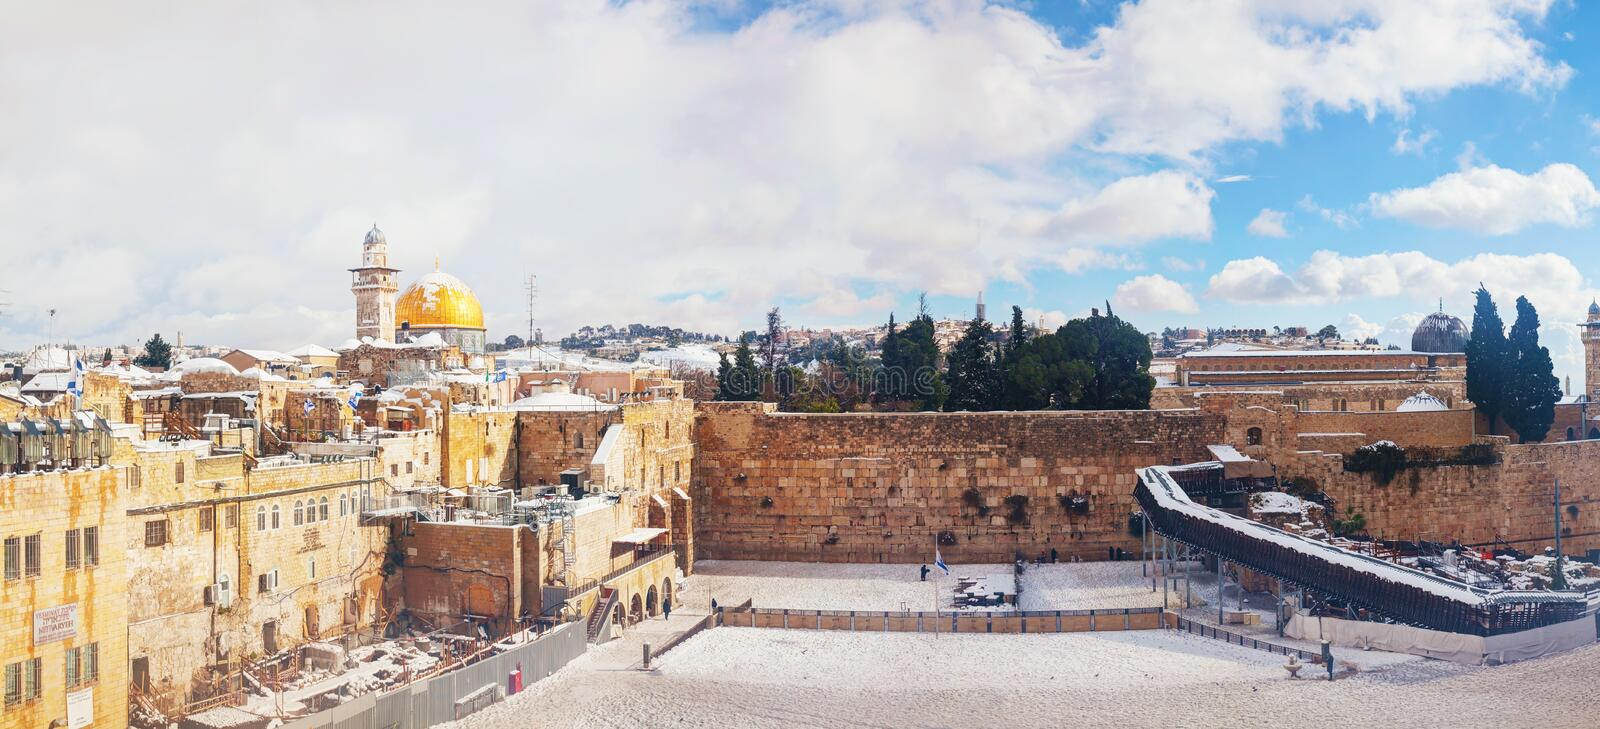 Download The Western Wall In Jerusalem, Israel Stock Image - Image: 36300651